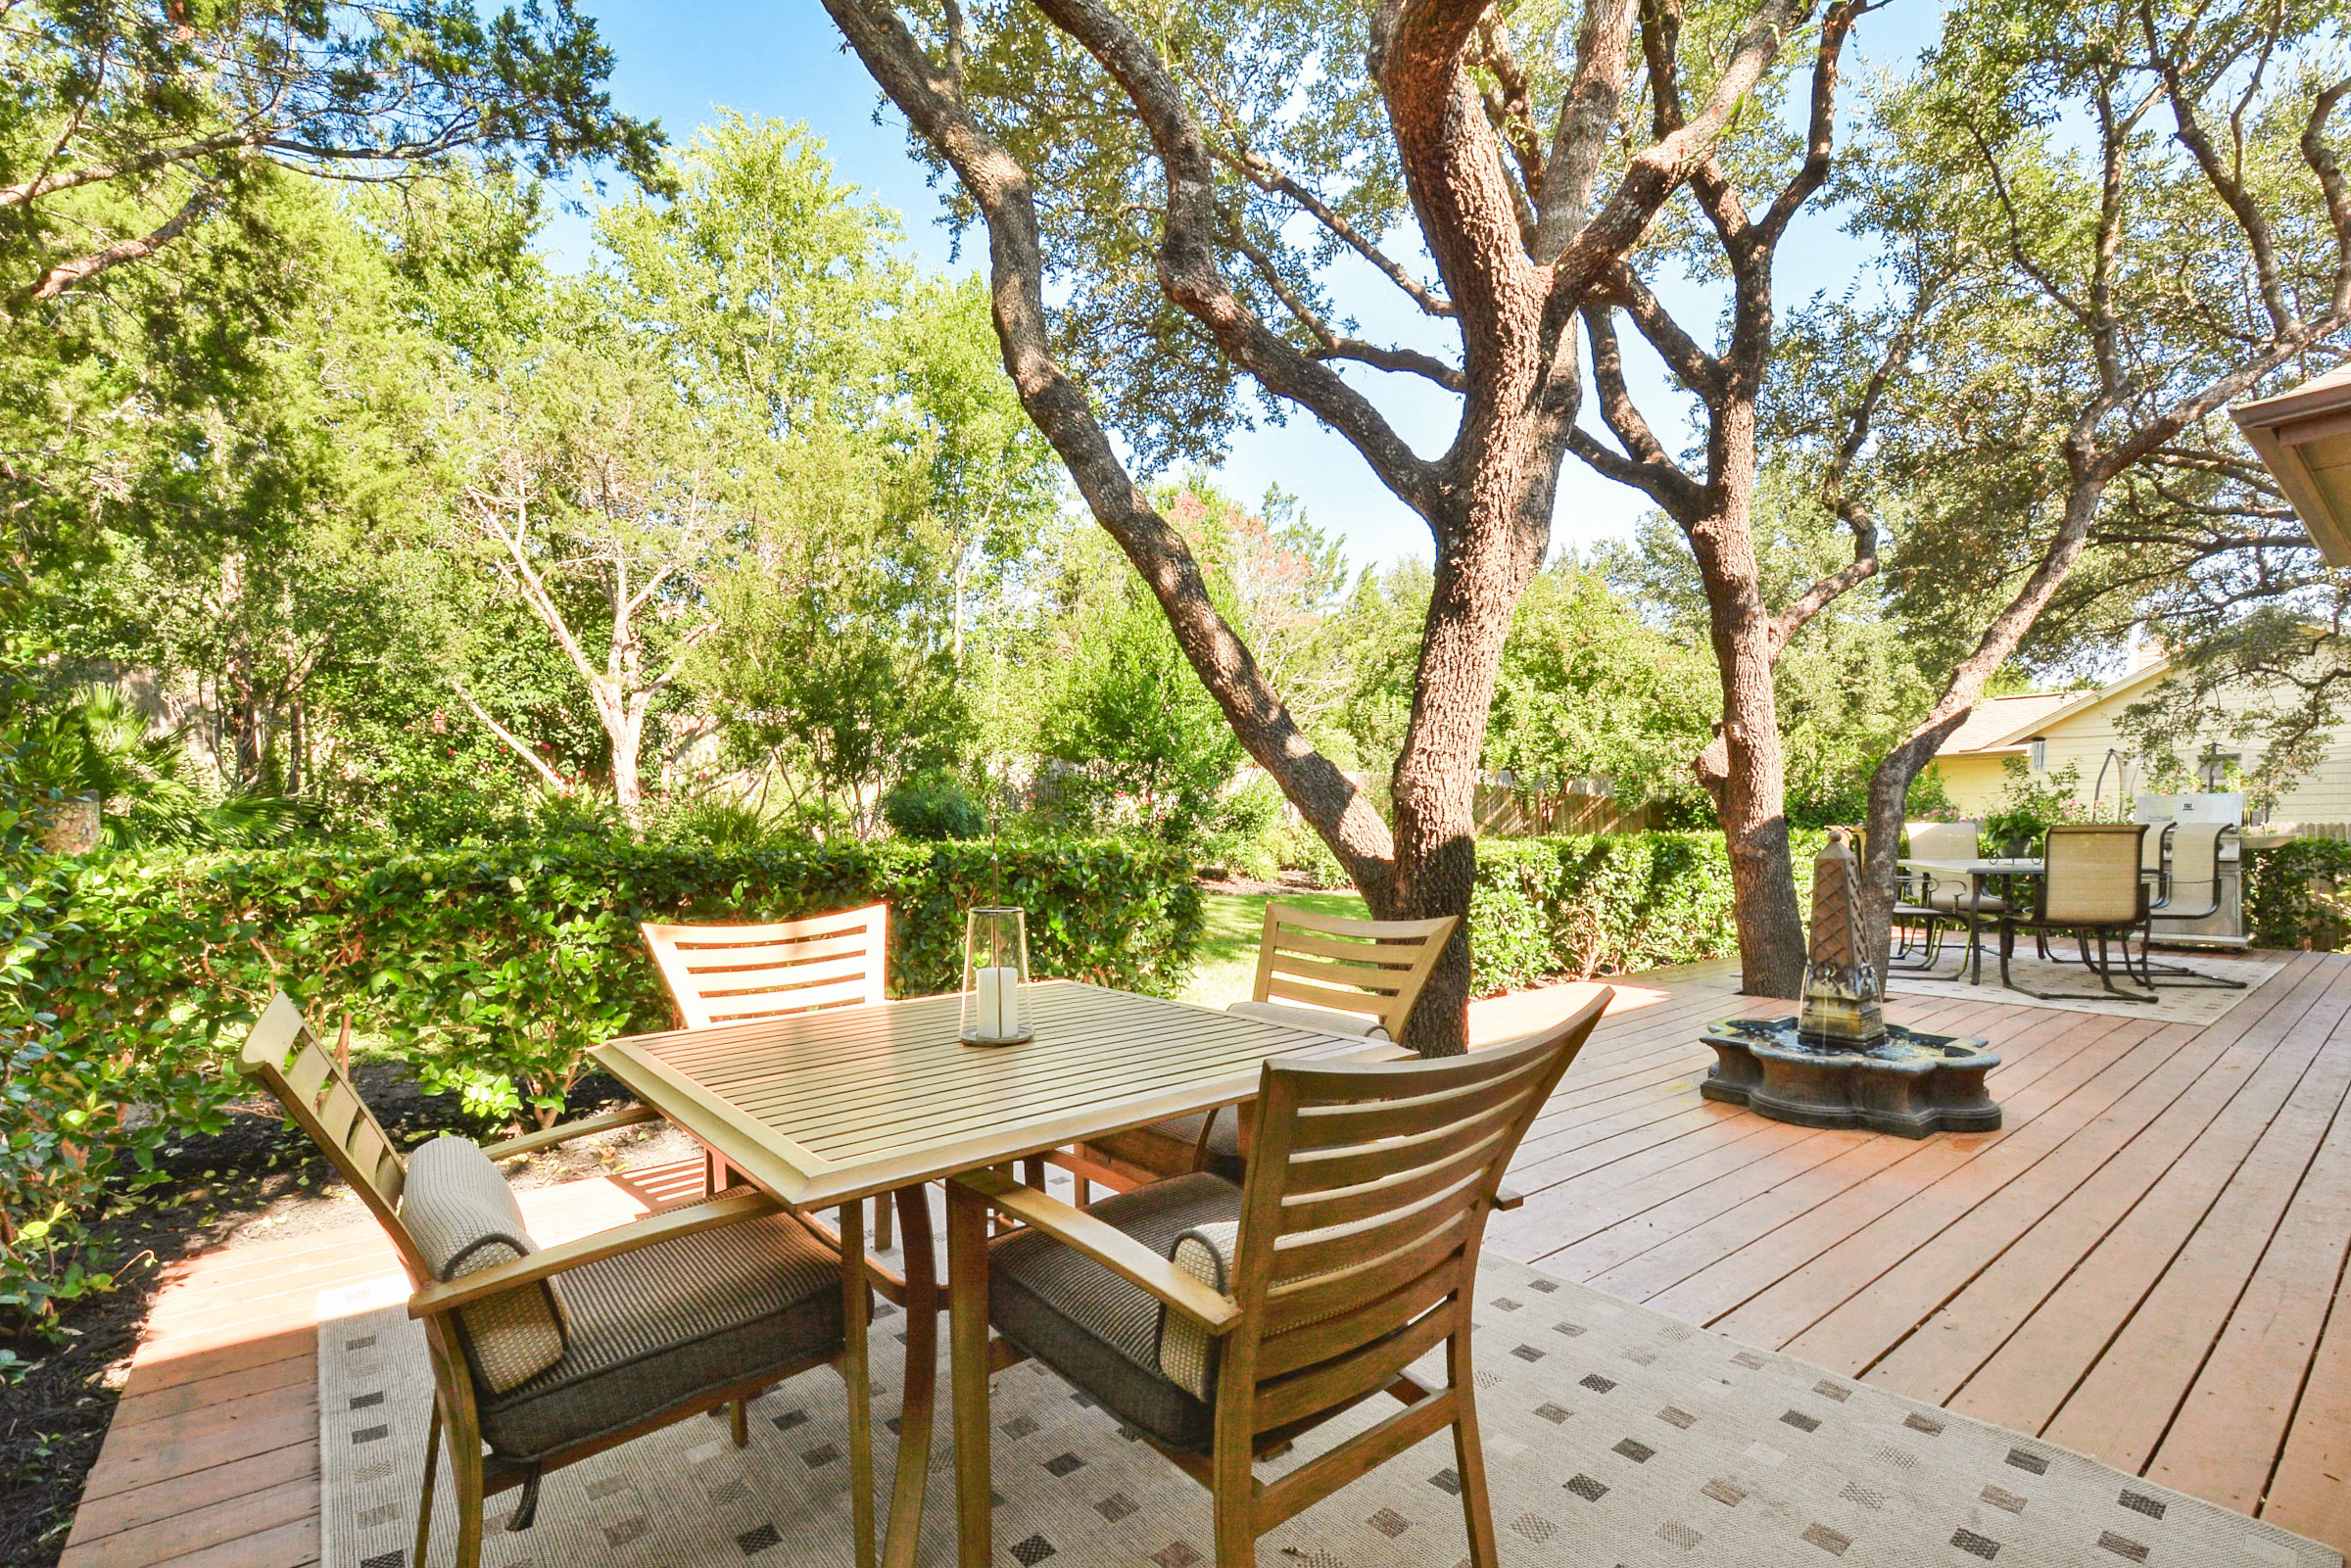 Austin TX Vacation Rental The extensive backyard